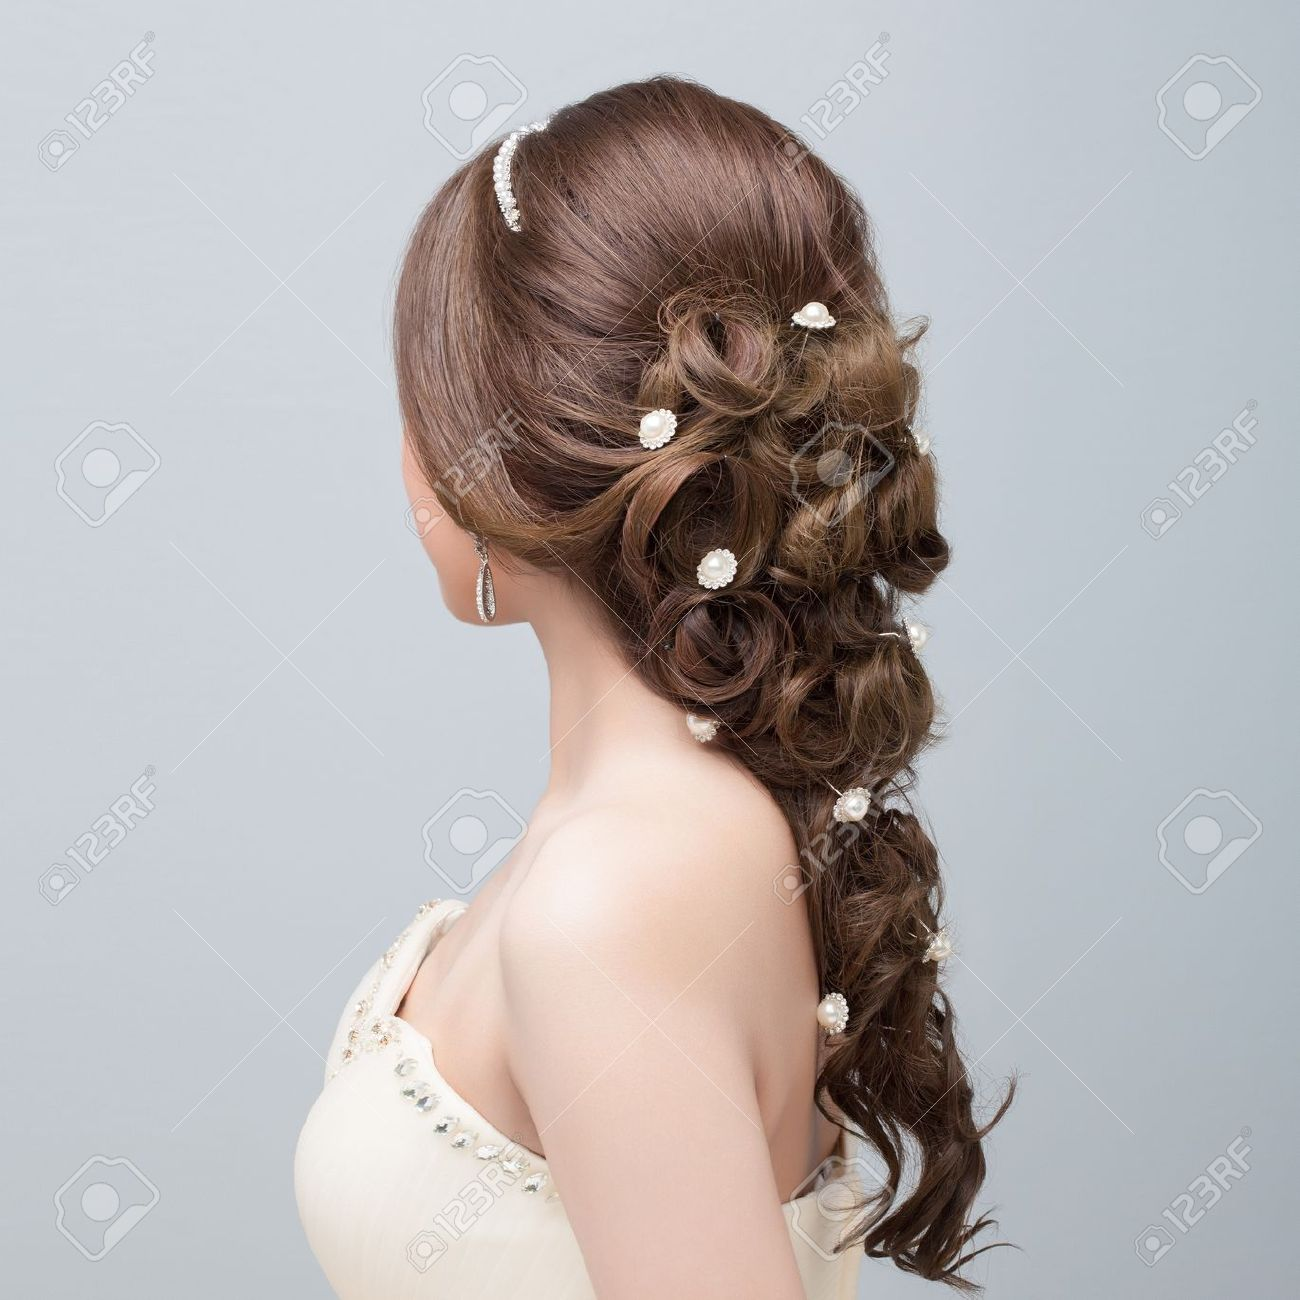 bridal hair style stock photo, picture and royalty free image. image